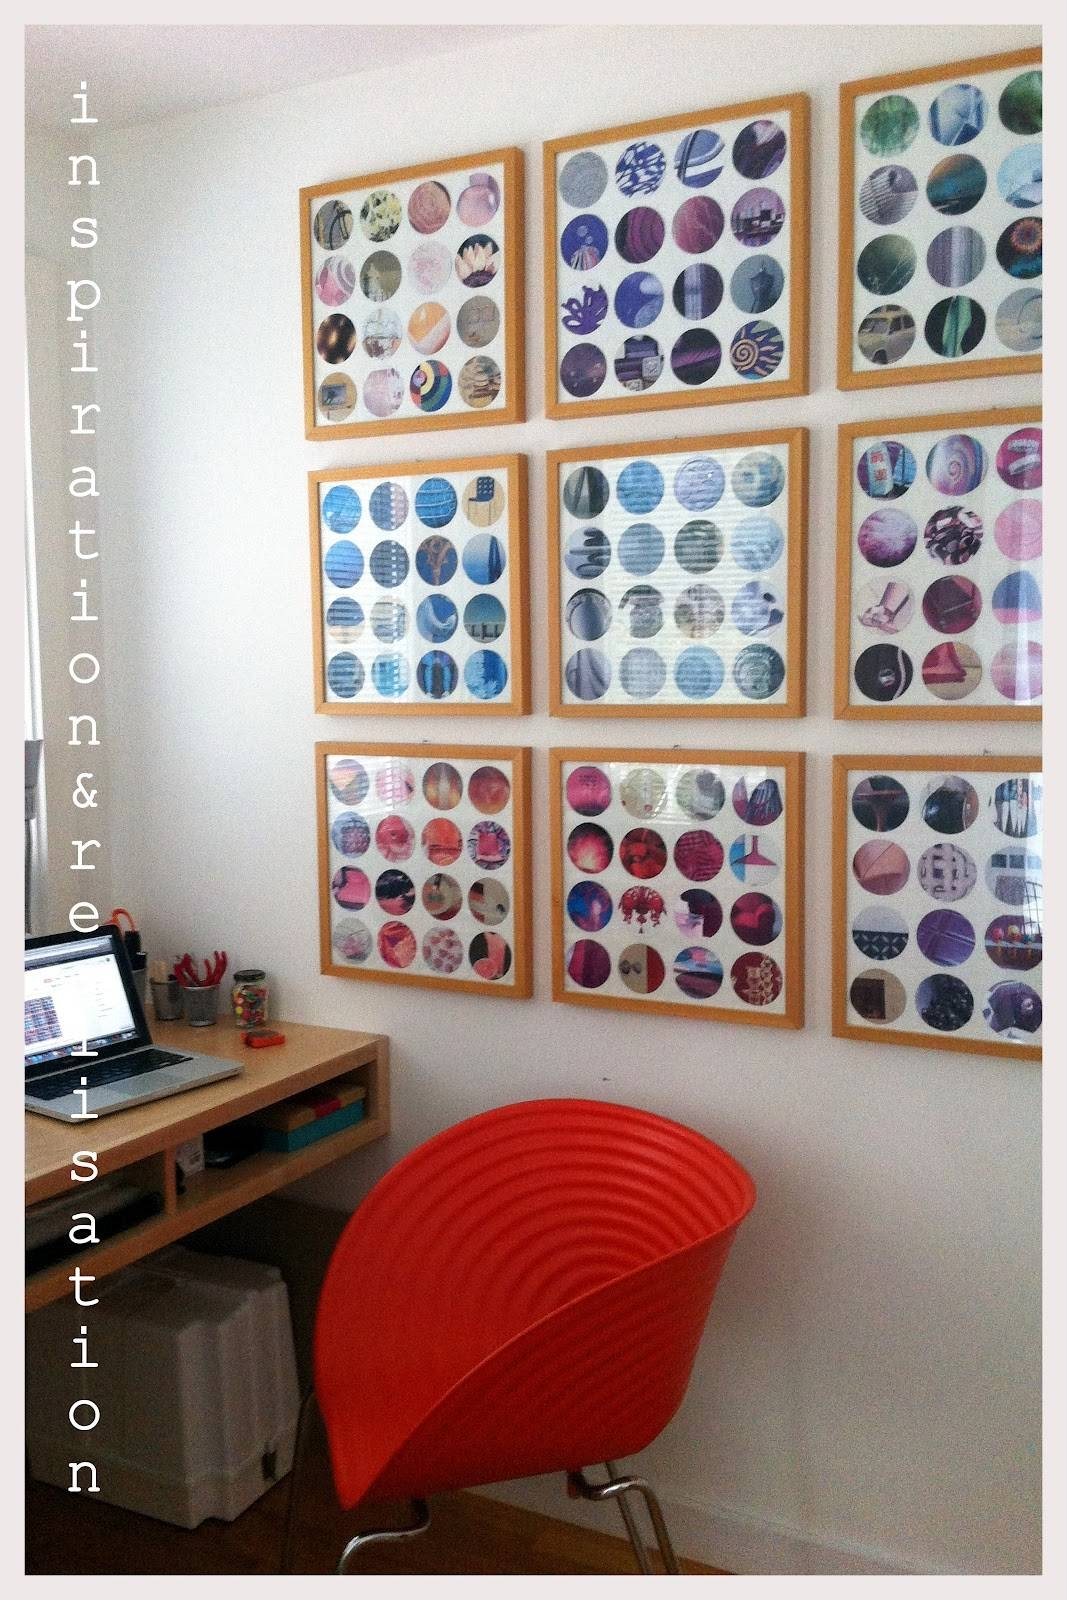 Inspiration And Realisation: Diy Fashion Blog: Diy Recycled Within Most Up To Date Recycled Wall Art (View 19 of 30)